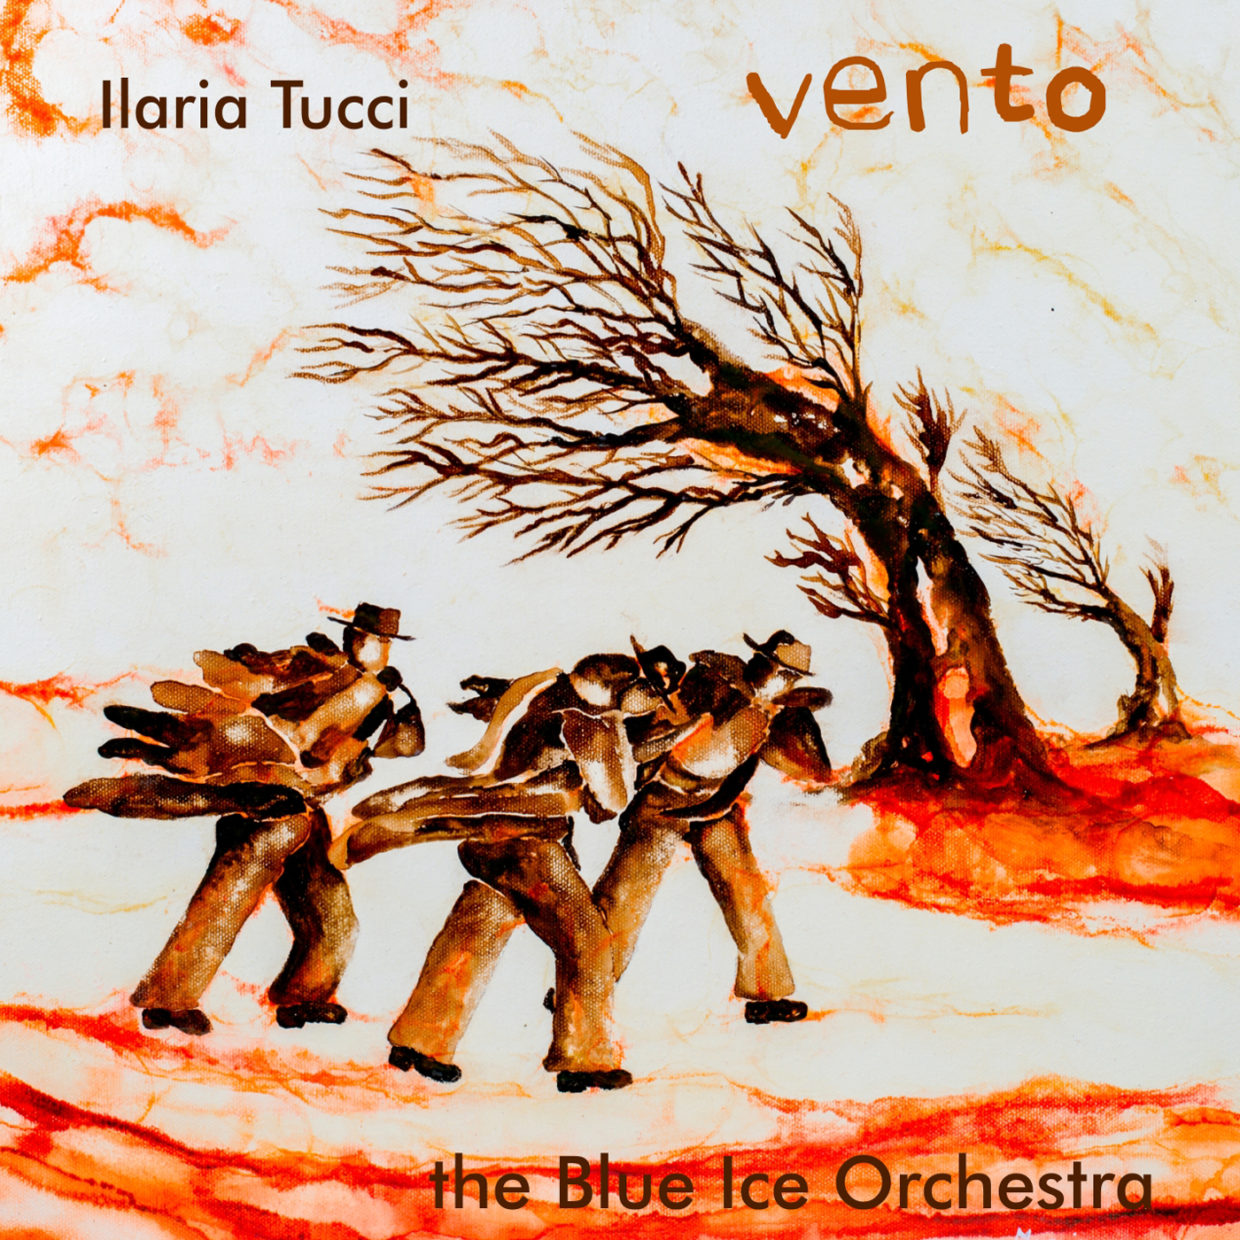 Vento – debut album from Ilaria Tucci & the Blue Ice Orchestra